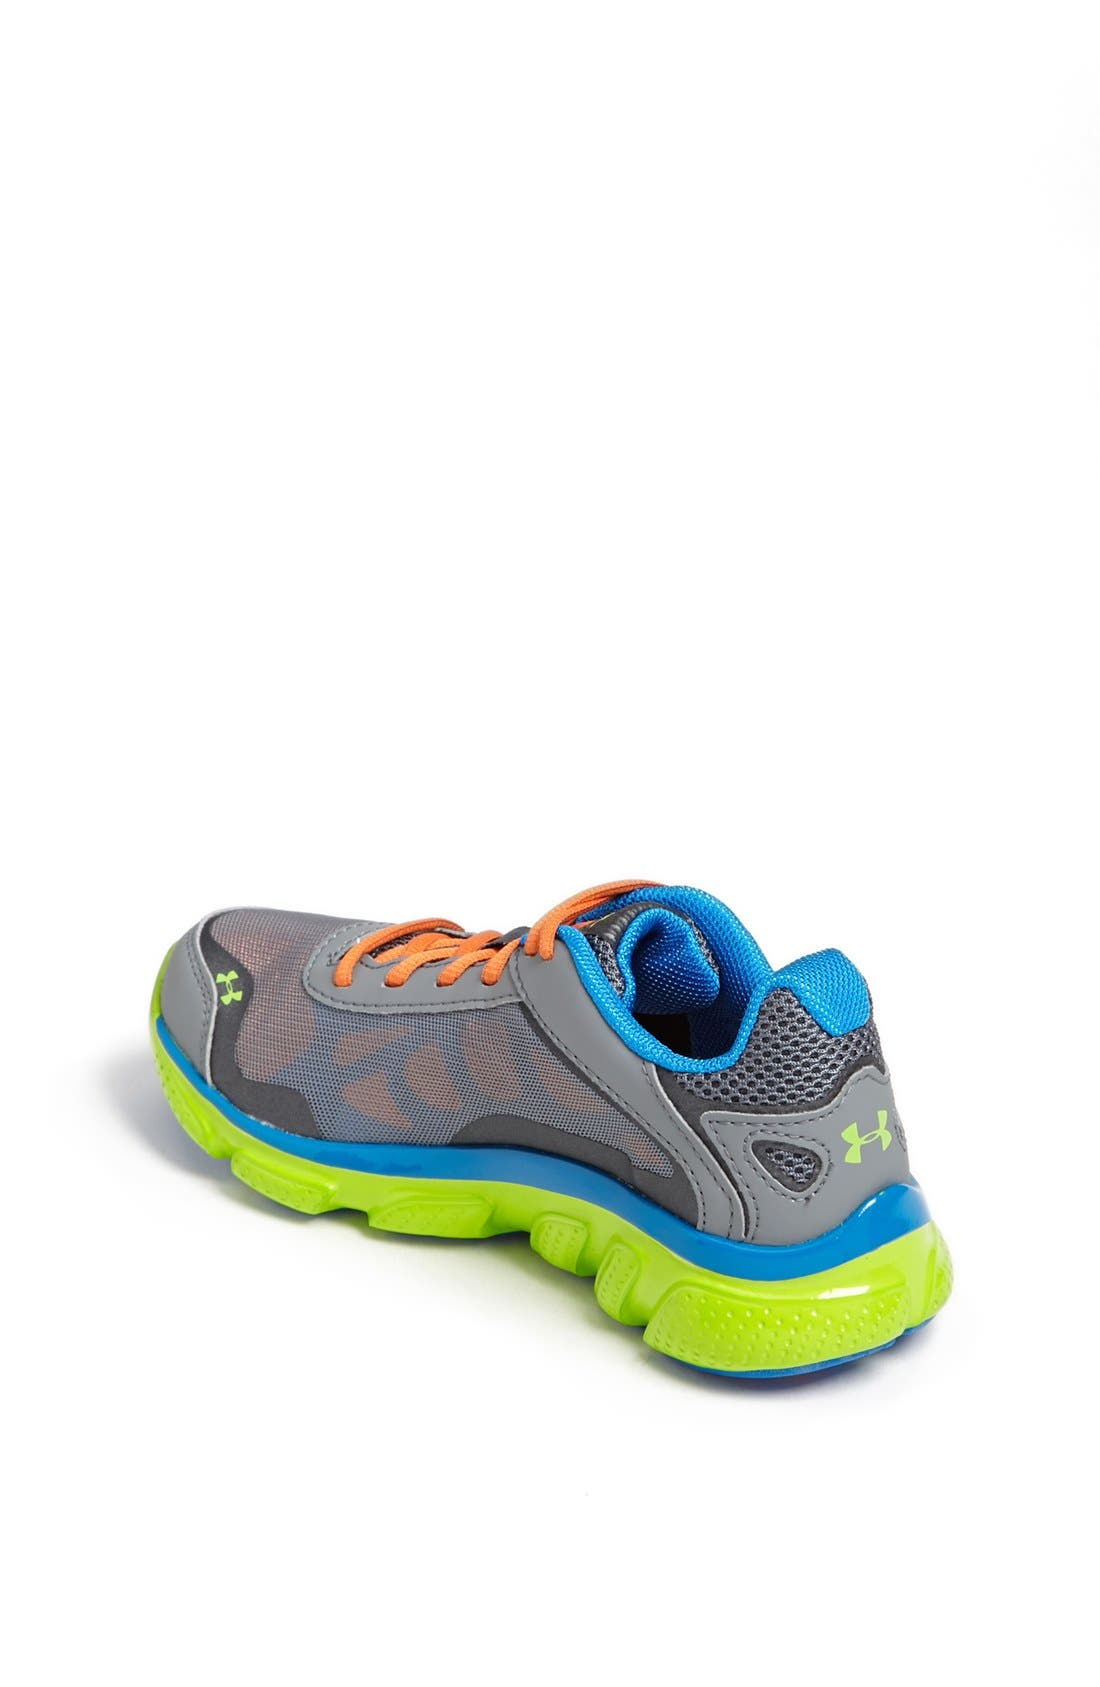 Alternate Image 2  - Under Armour 'Micro G® Pulse' Training Shoe (Toddler, Little Kid & Big Kid)